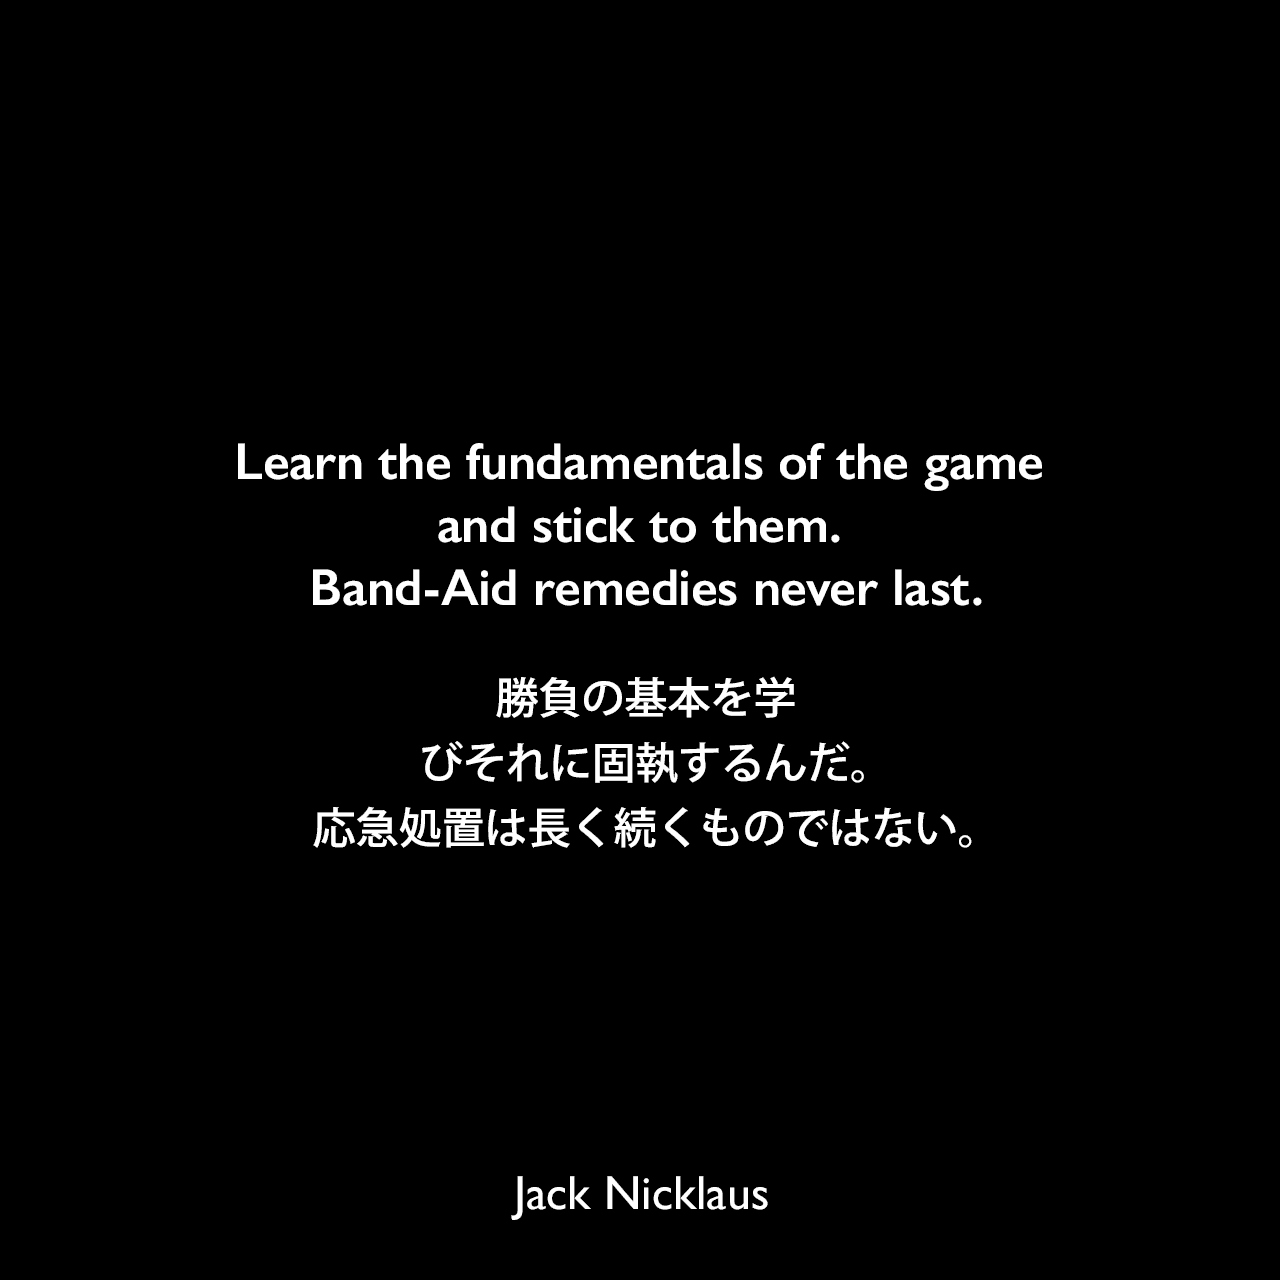 Learn the fundamentals of the game and stick to them. Band-Aid remedies never last.勝負の基本を学びそれに固執するんだ。応急処置は長く続くものではない。Jack Nicklaus